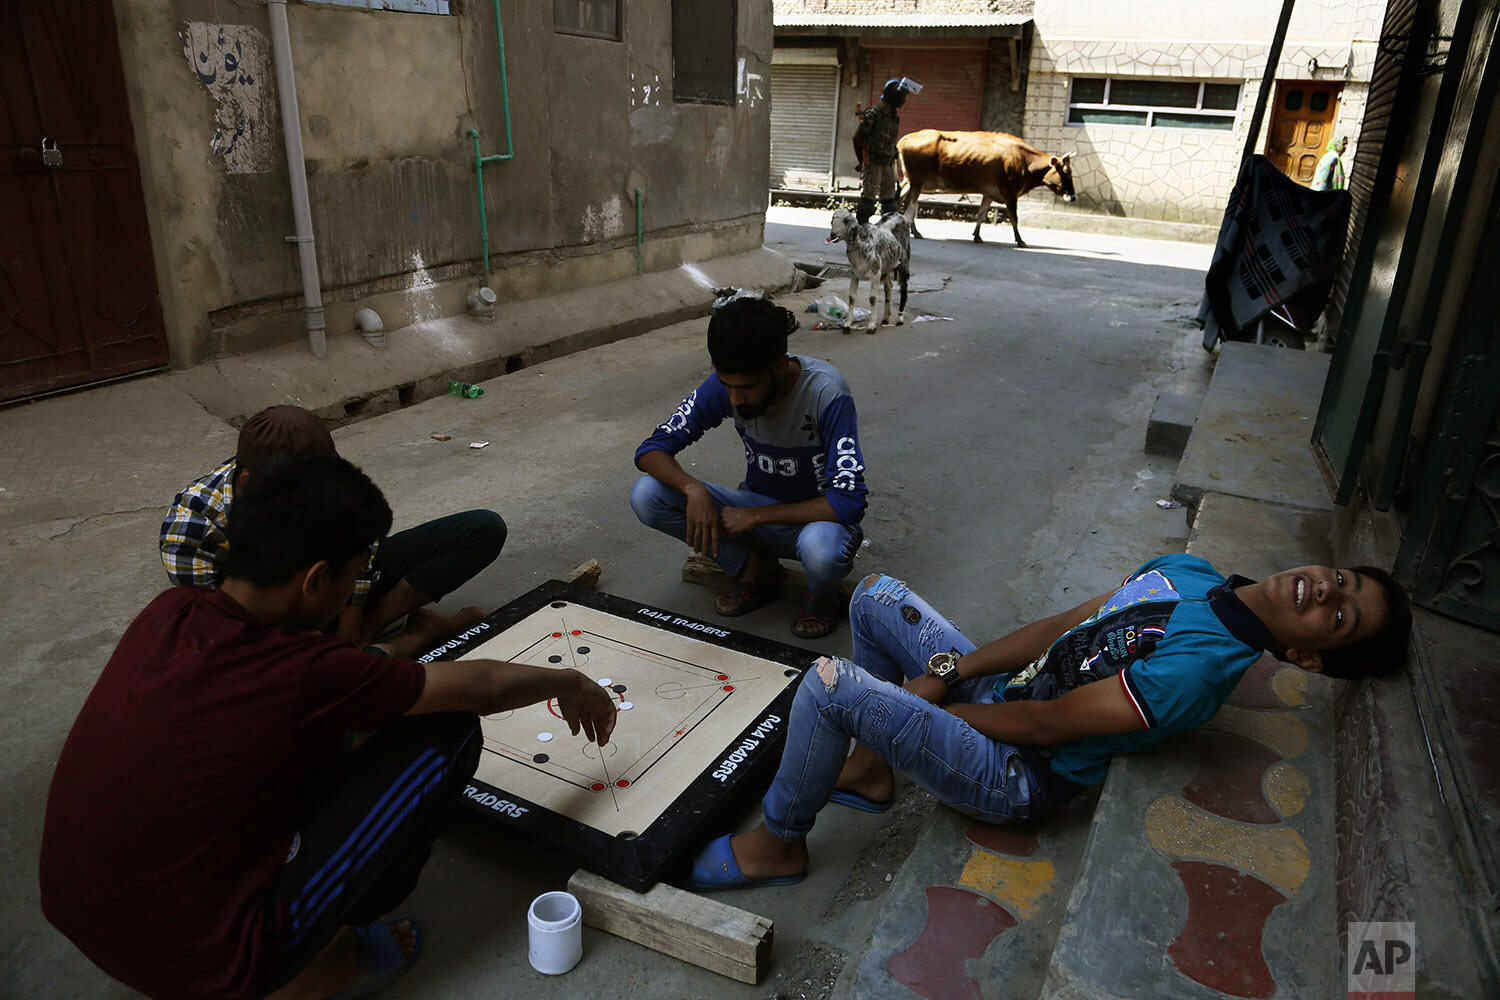 Children play carrom board as an Indian paramilitary soldier stands guard at a closed market area in Srinagar, Indian controlled Kashmir, Tuesday, Sept. 17, 2019. (AP Photo/Mukhtar Khan)